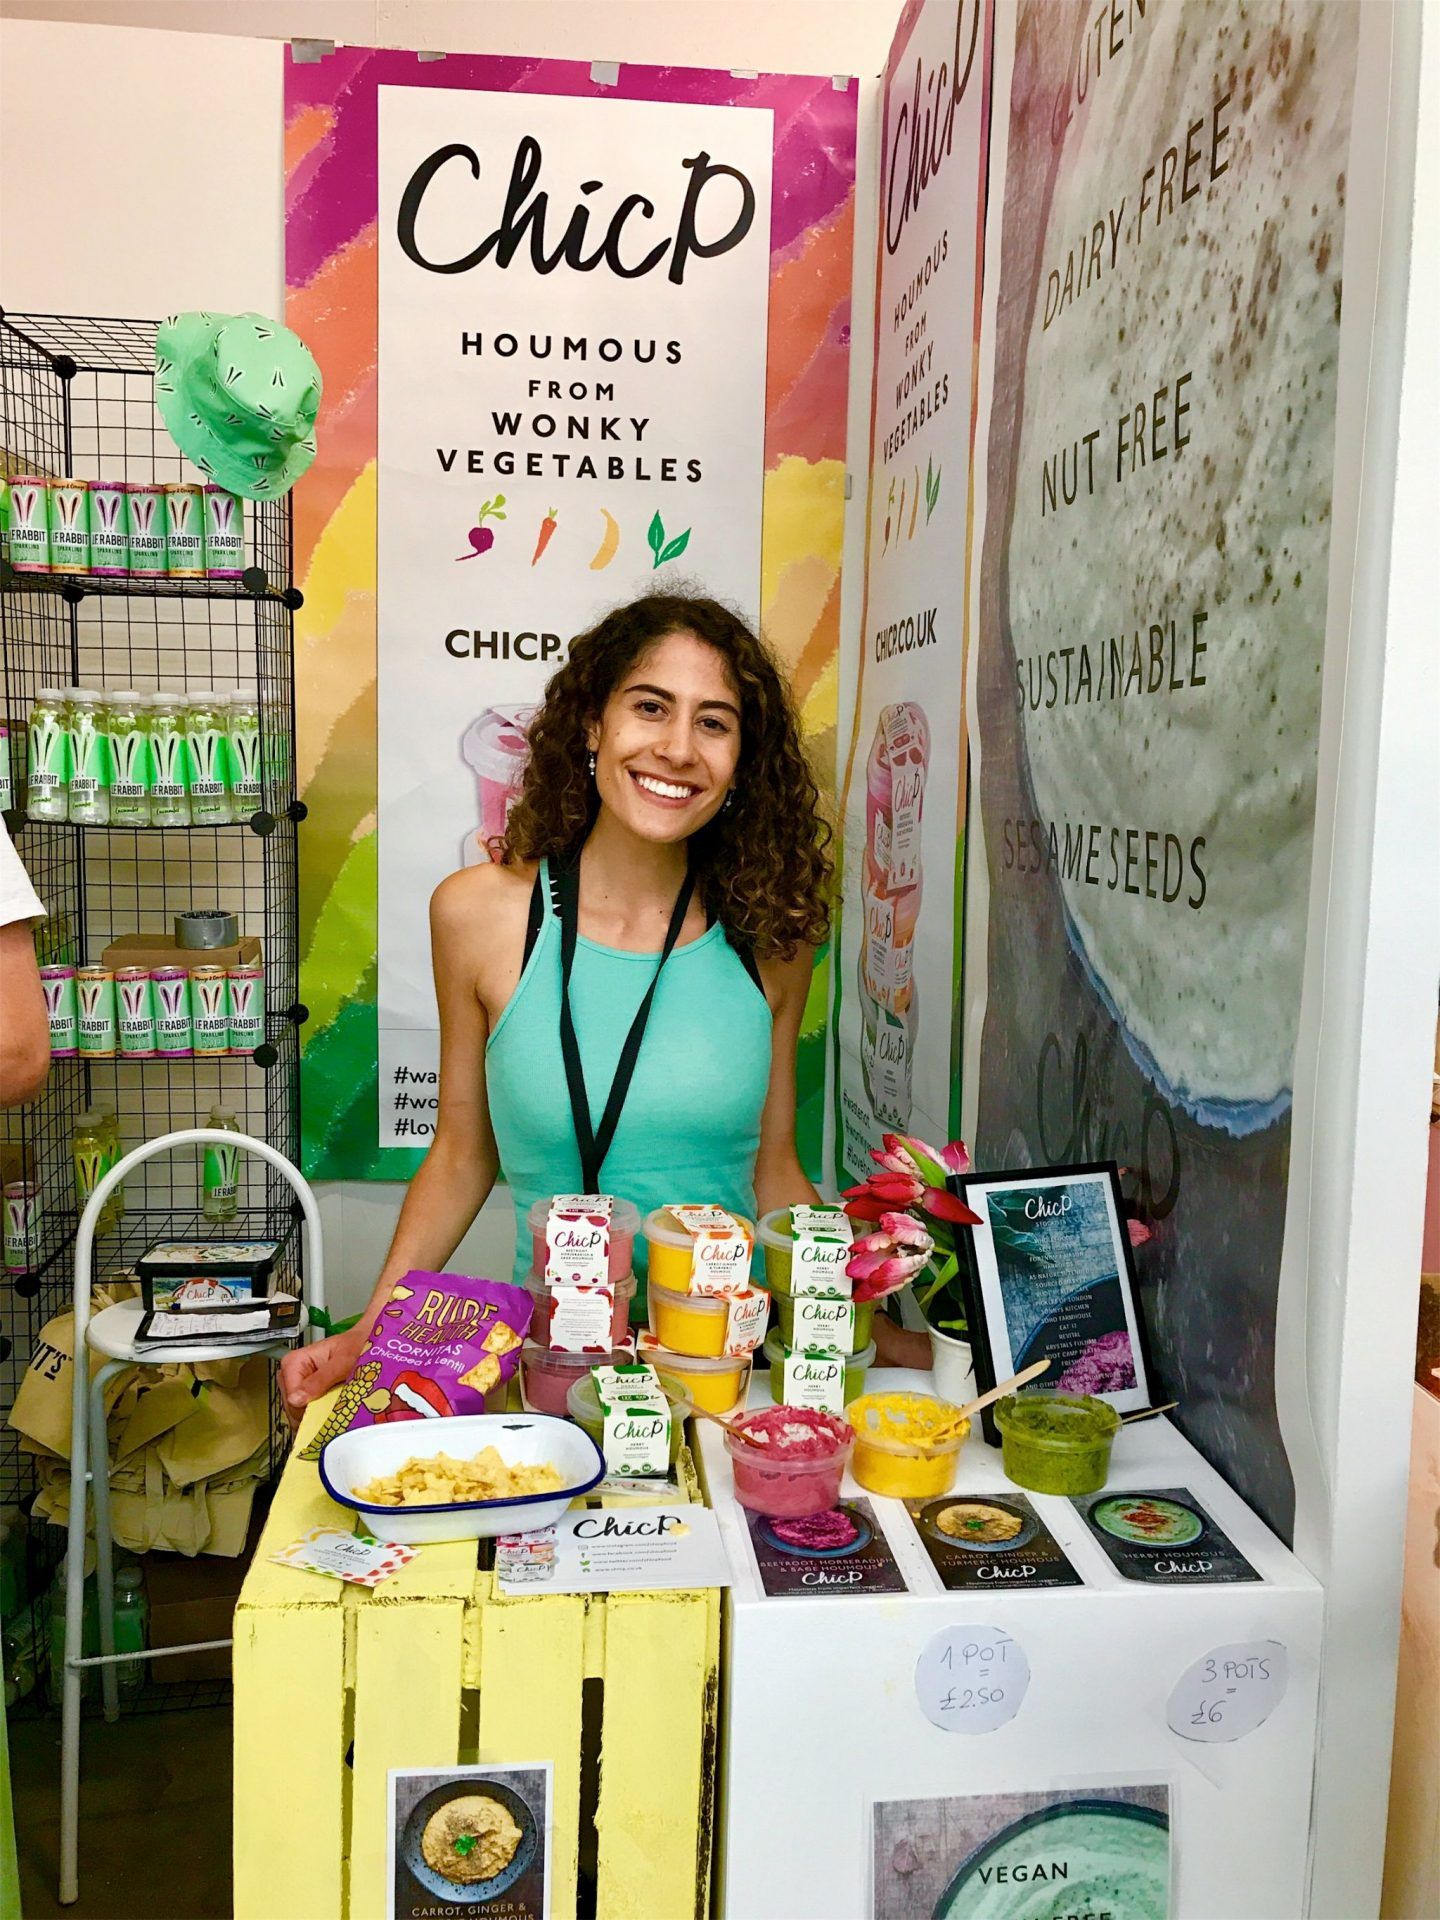 Balance Festival with ChicP hummus: A healthy foodie's heaven